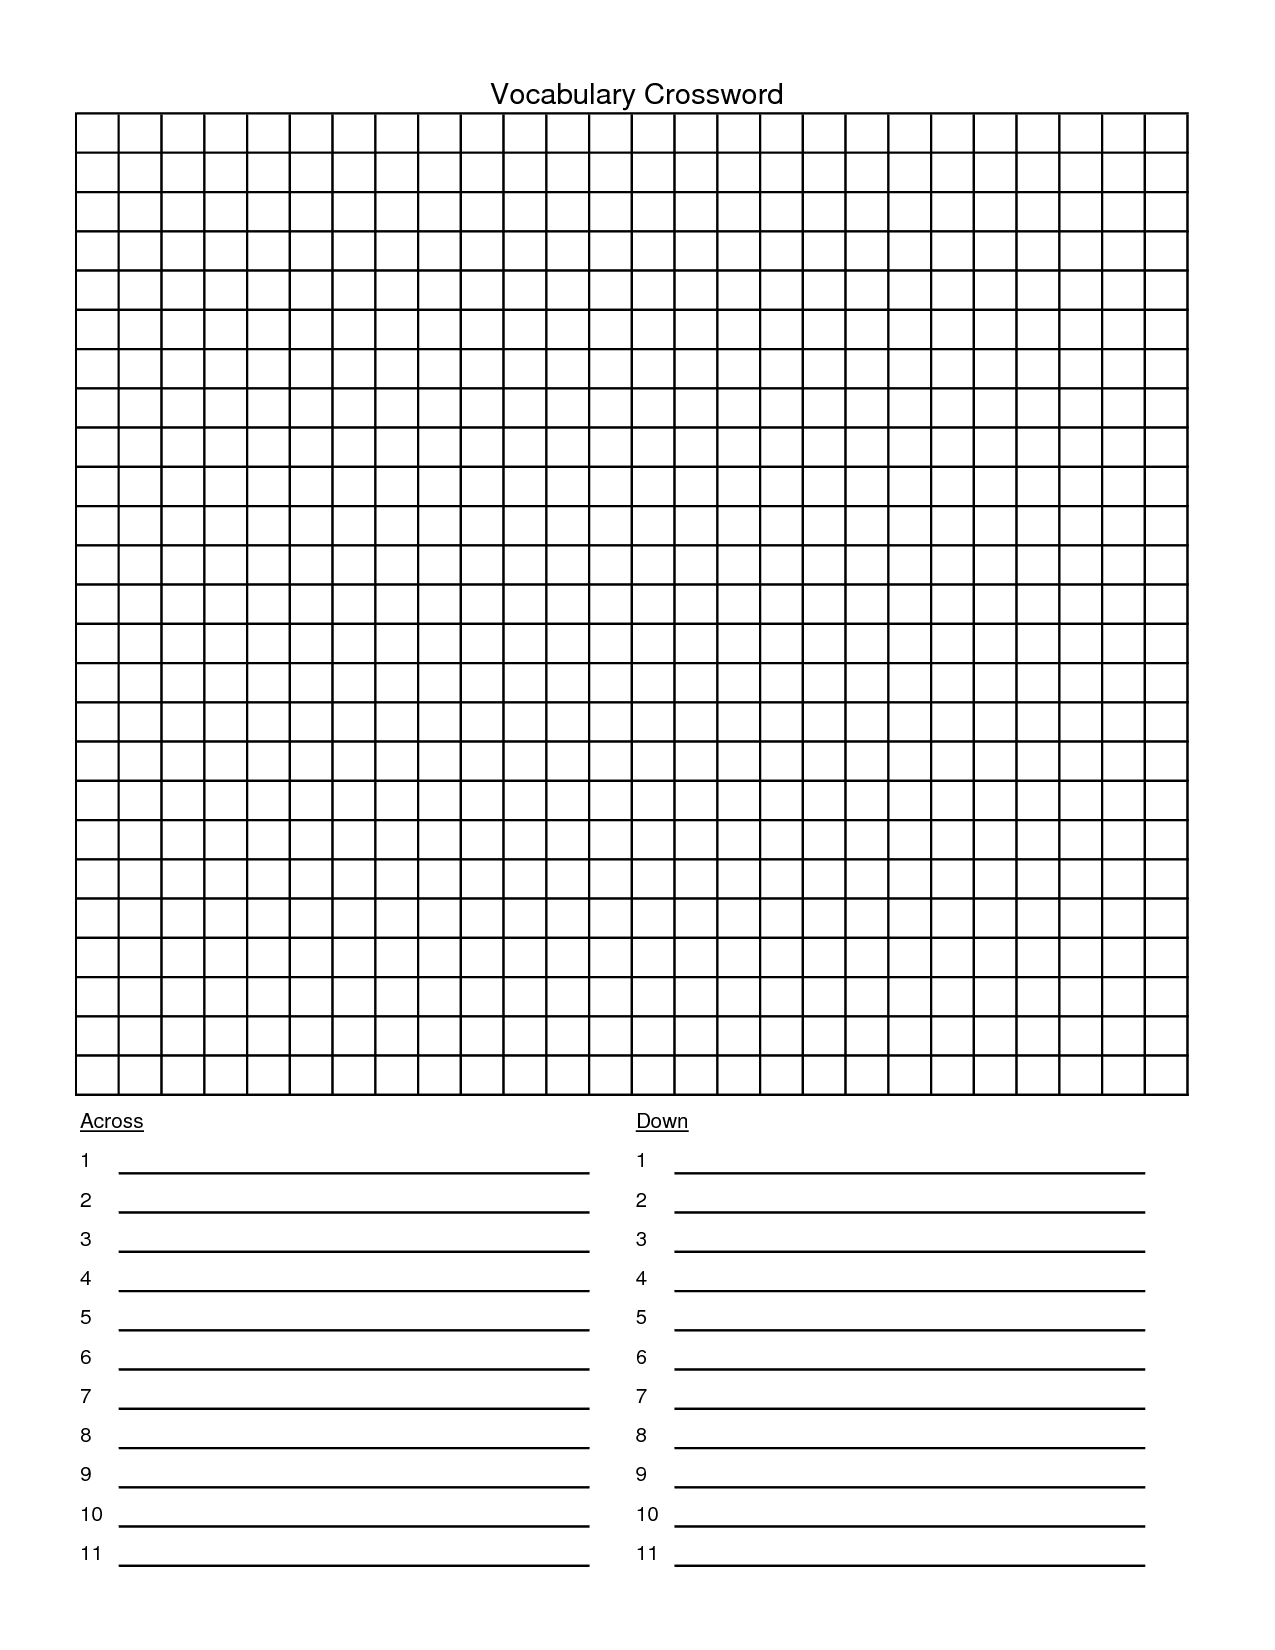 Blank Crossword Puzzle Template Templates Printable Free Word Wall Template Crossword Puzzle Maker